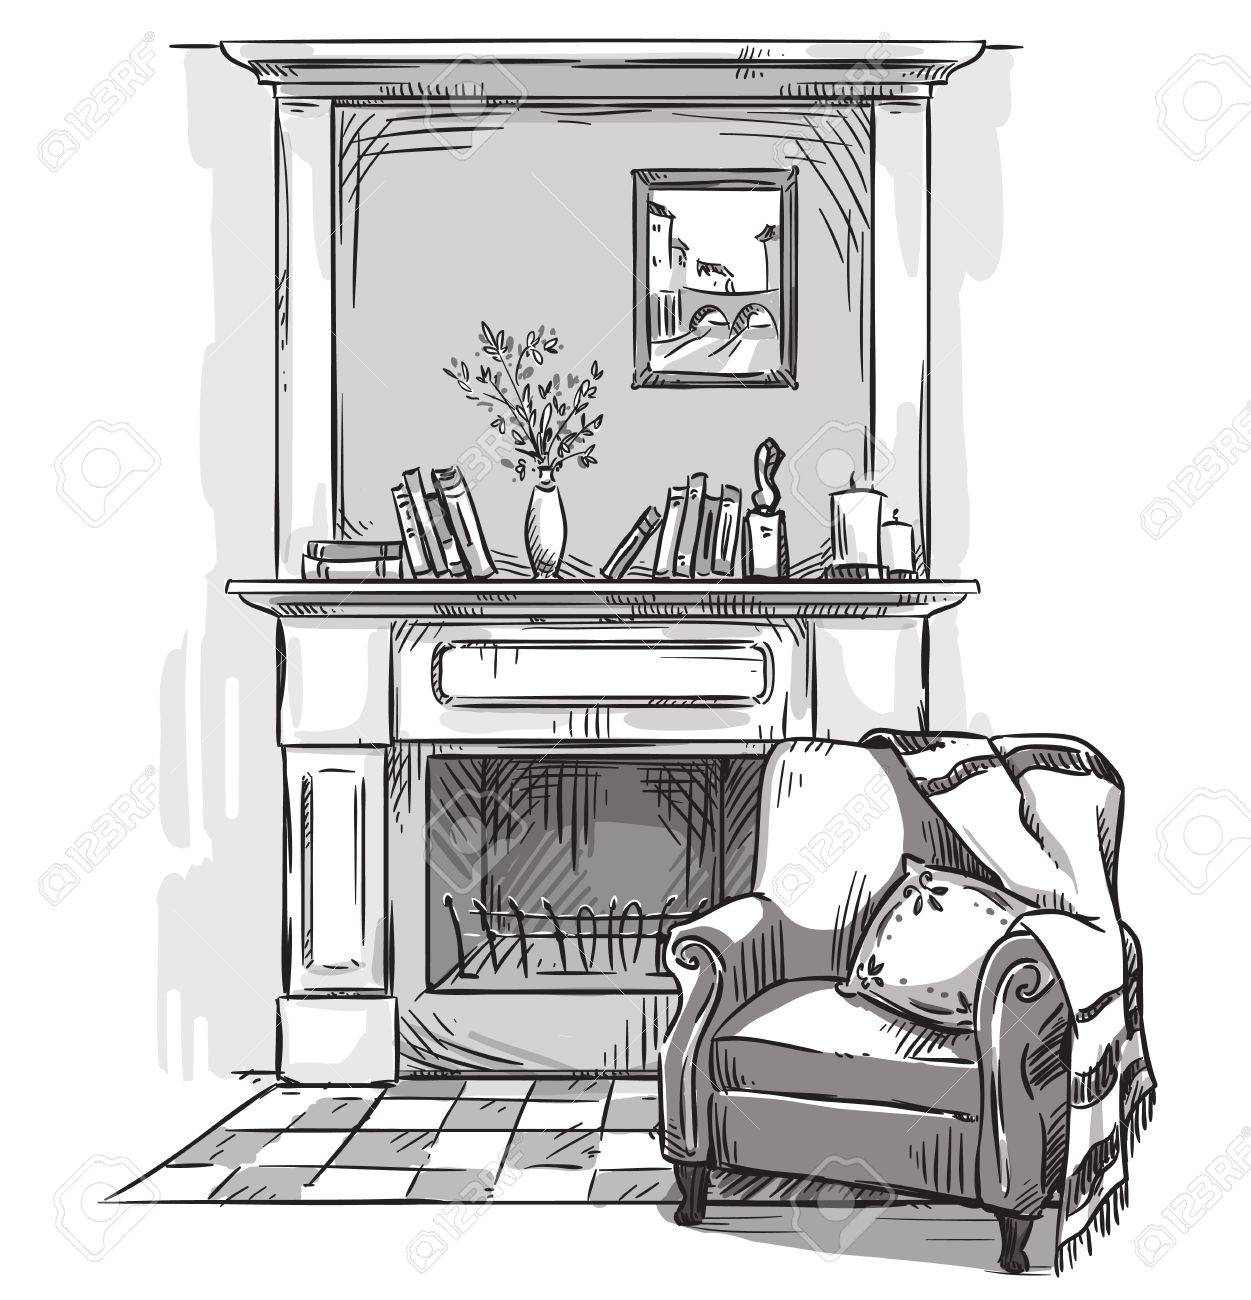 Image result for black and white drawing image of a cozy chair